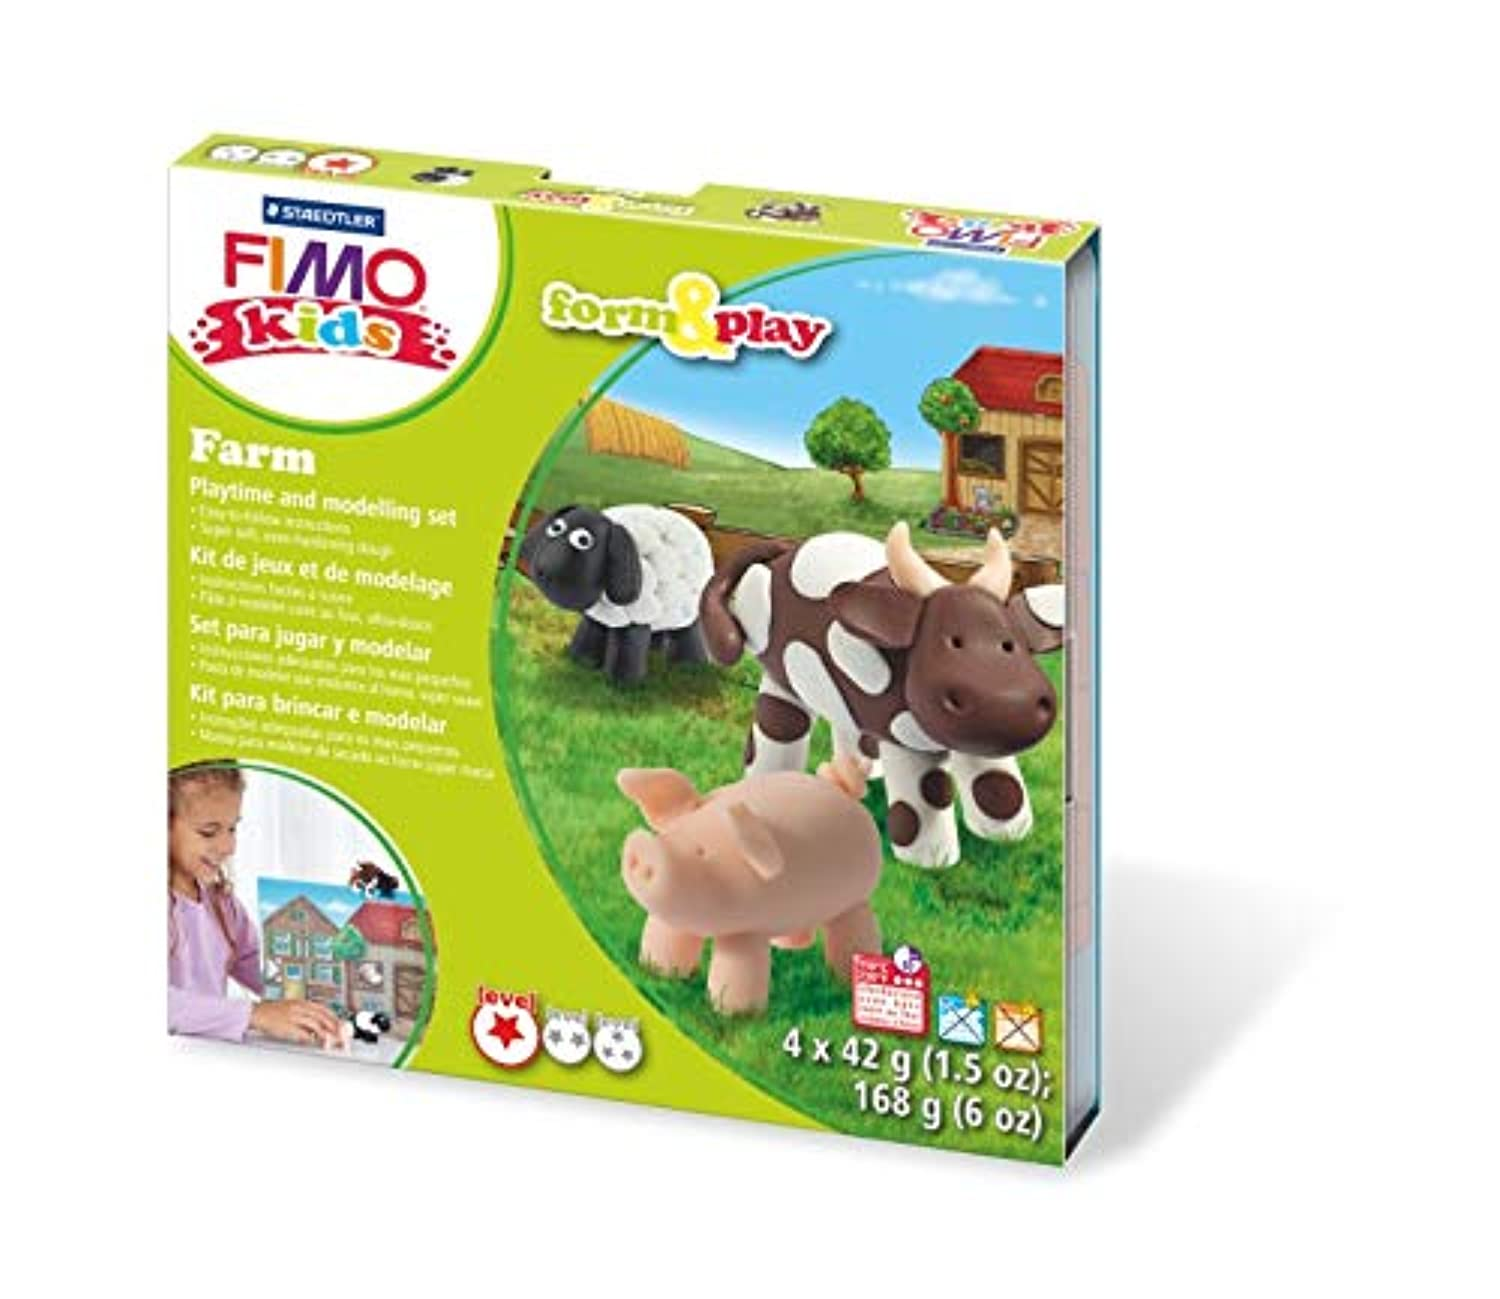 SET FIMO KIDS NAVES ESPACIALES MASCOTAS FORM & PLAY NIVEL 2